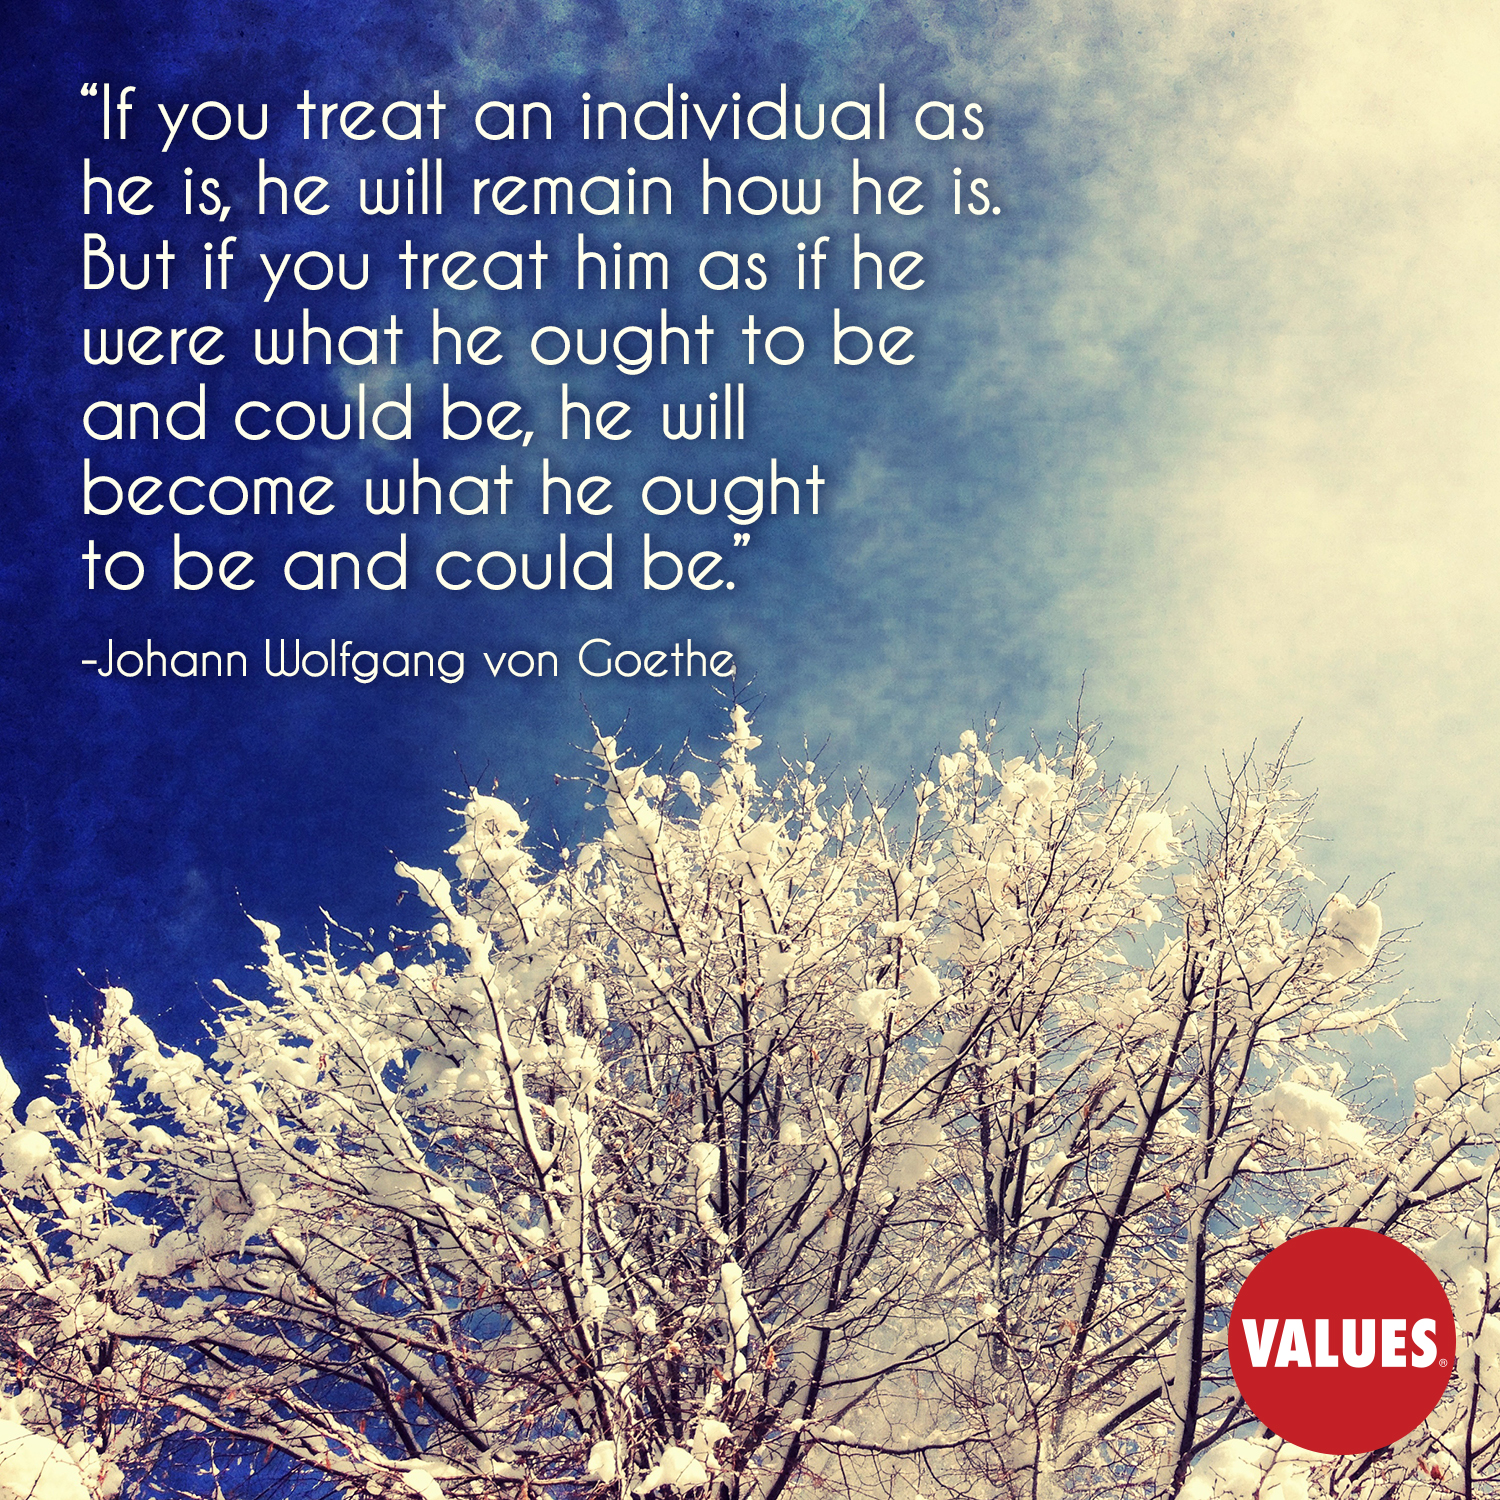 If you treat an individual as he is, he will remain how he is. But if you treat him as if he were what he ought to be and could be, he will become what he ought to be and could be. —Johann Wolfgang von Goethe